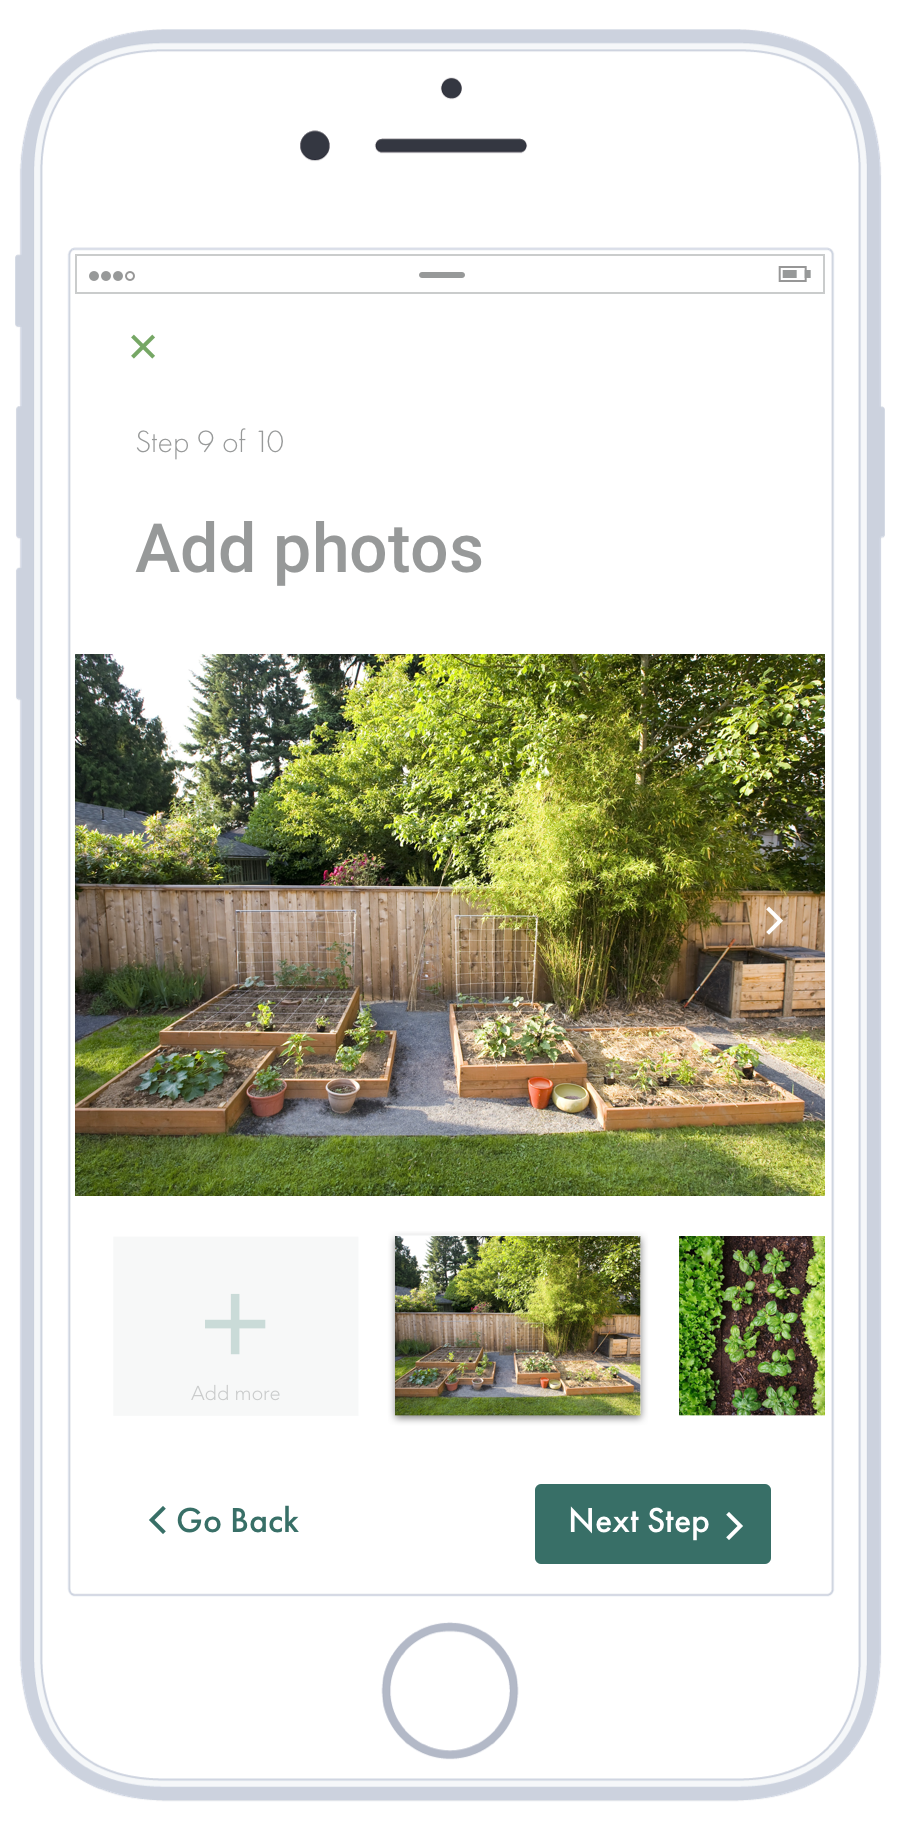 Post and manage a plot   Create or manage a garden post to provide land and resources for others to garden.